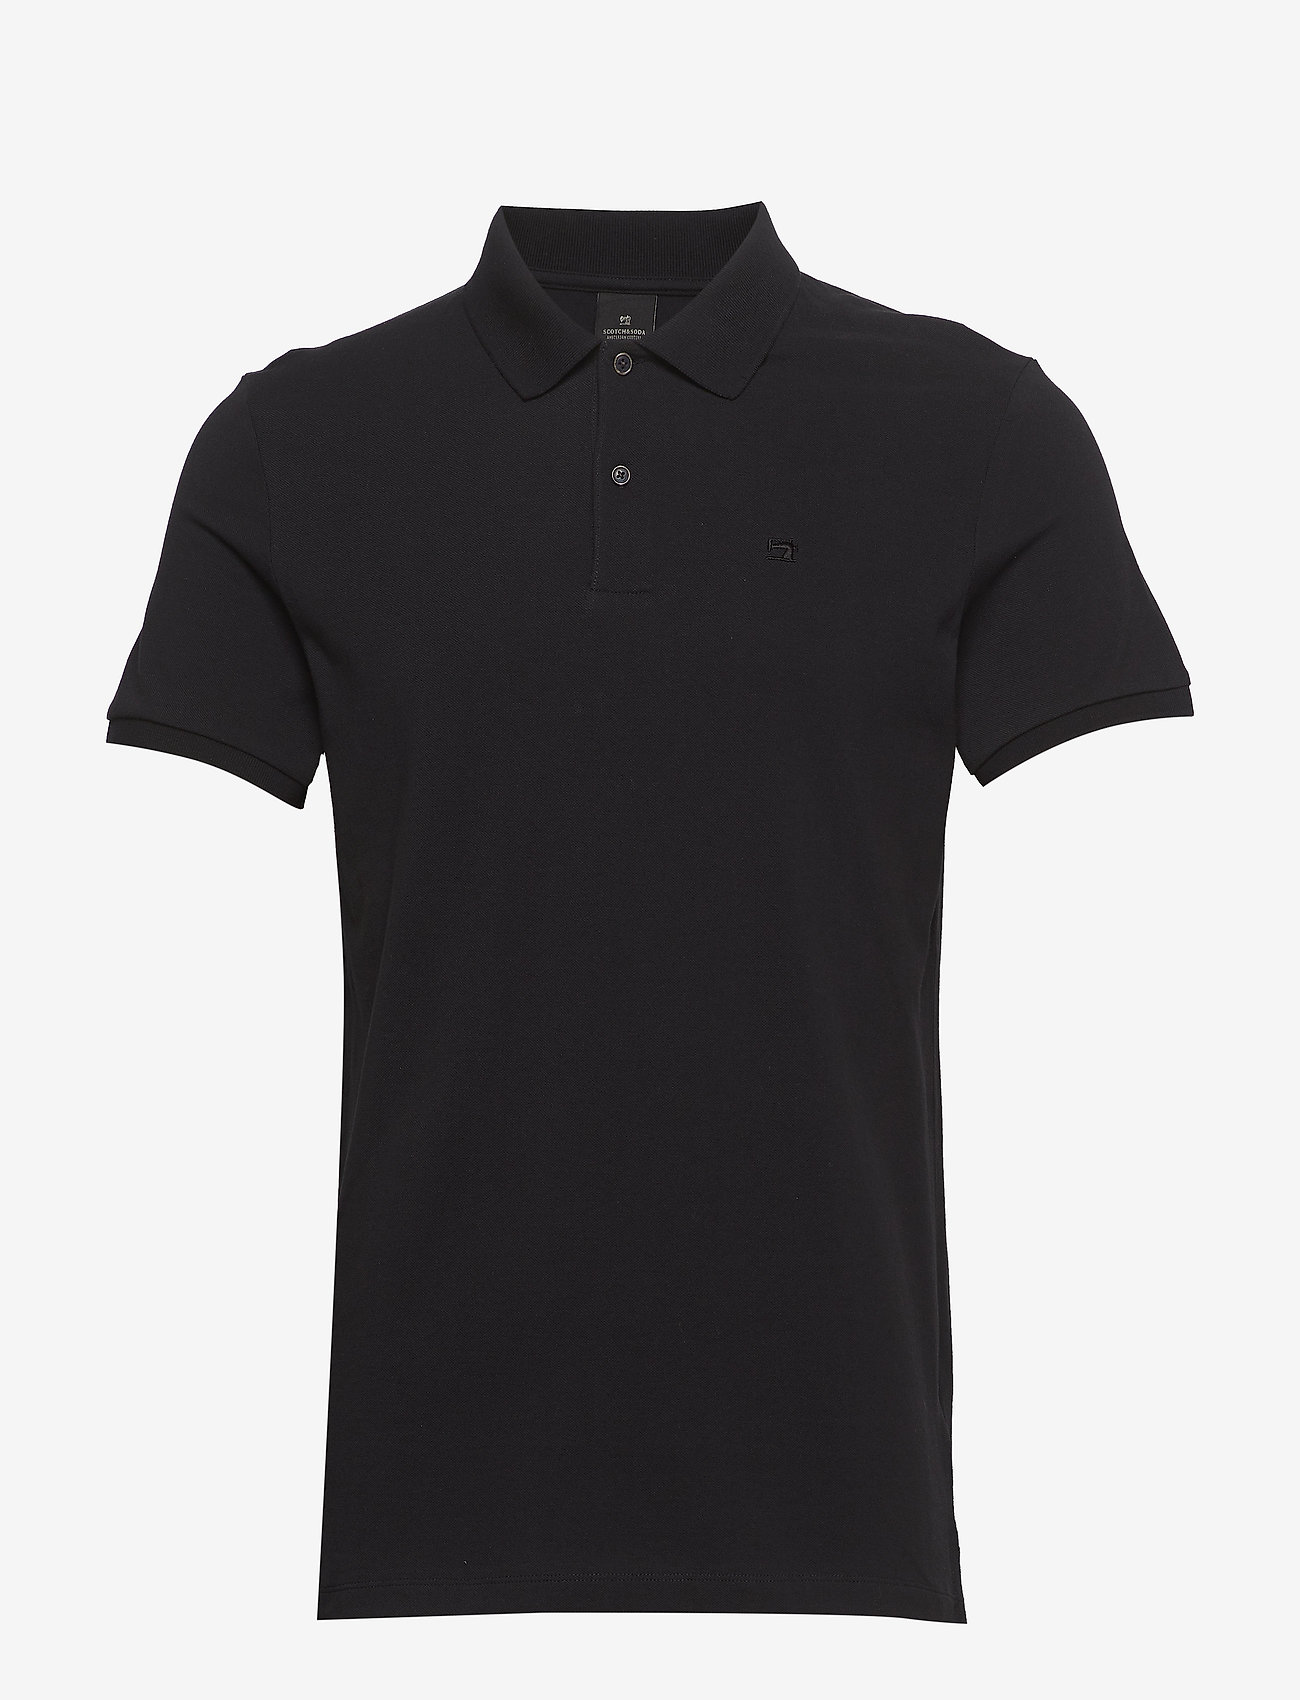 Scotch & Soda - - Classic polo in pique quality with clean outlook - short-sleeved polos - black - 0